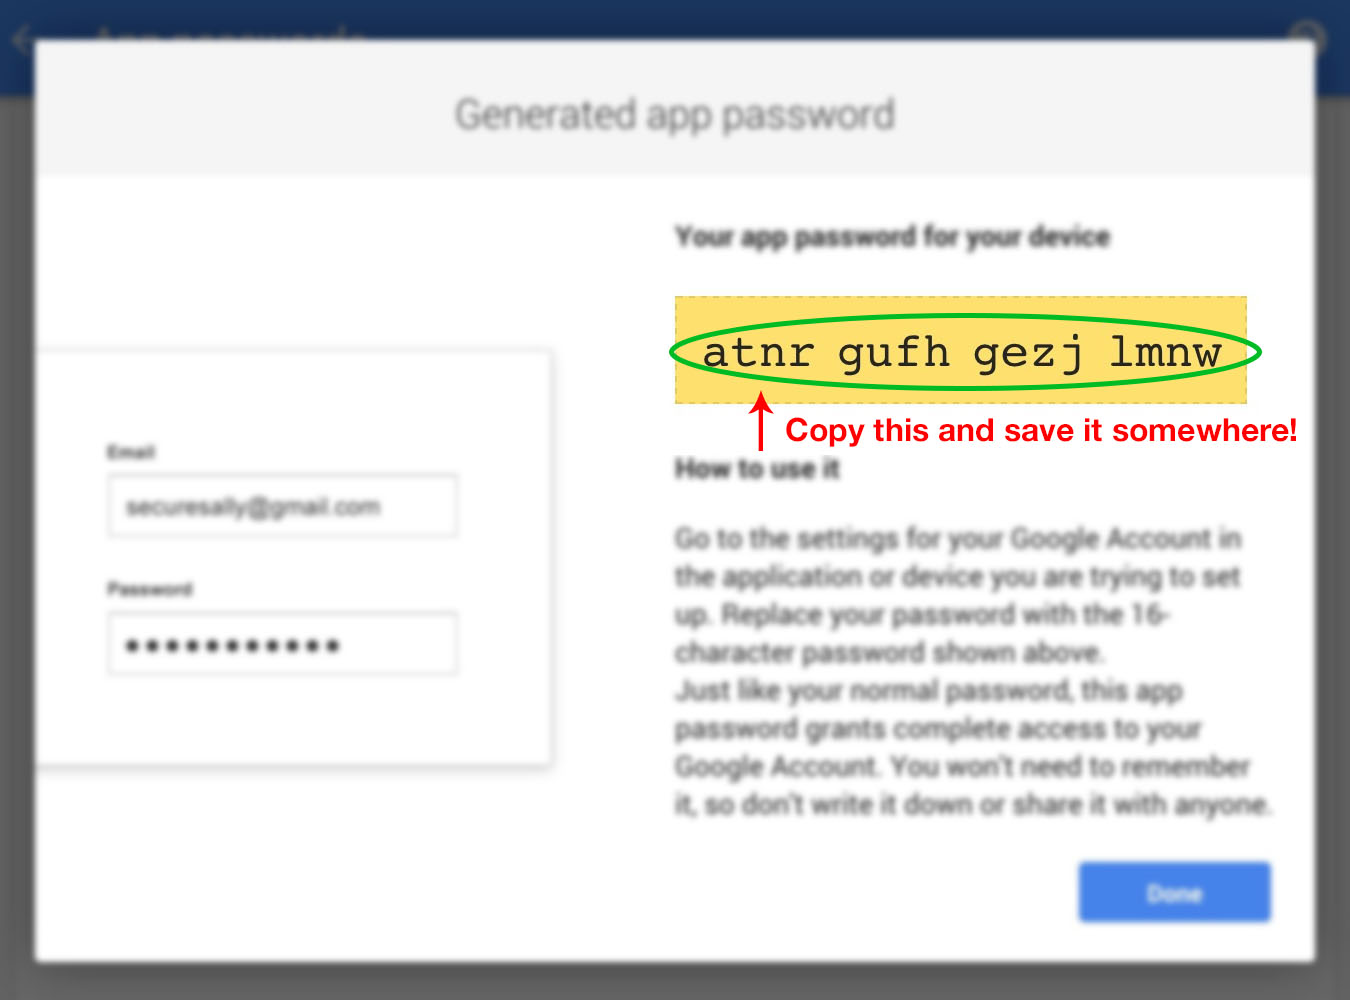 Gmail GoDaddy email forward (10): Generated App password.